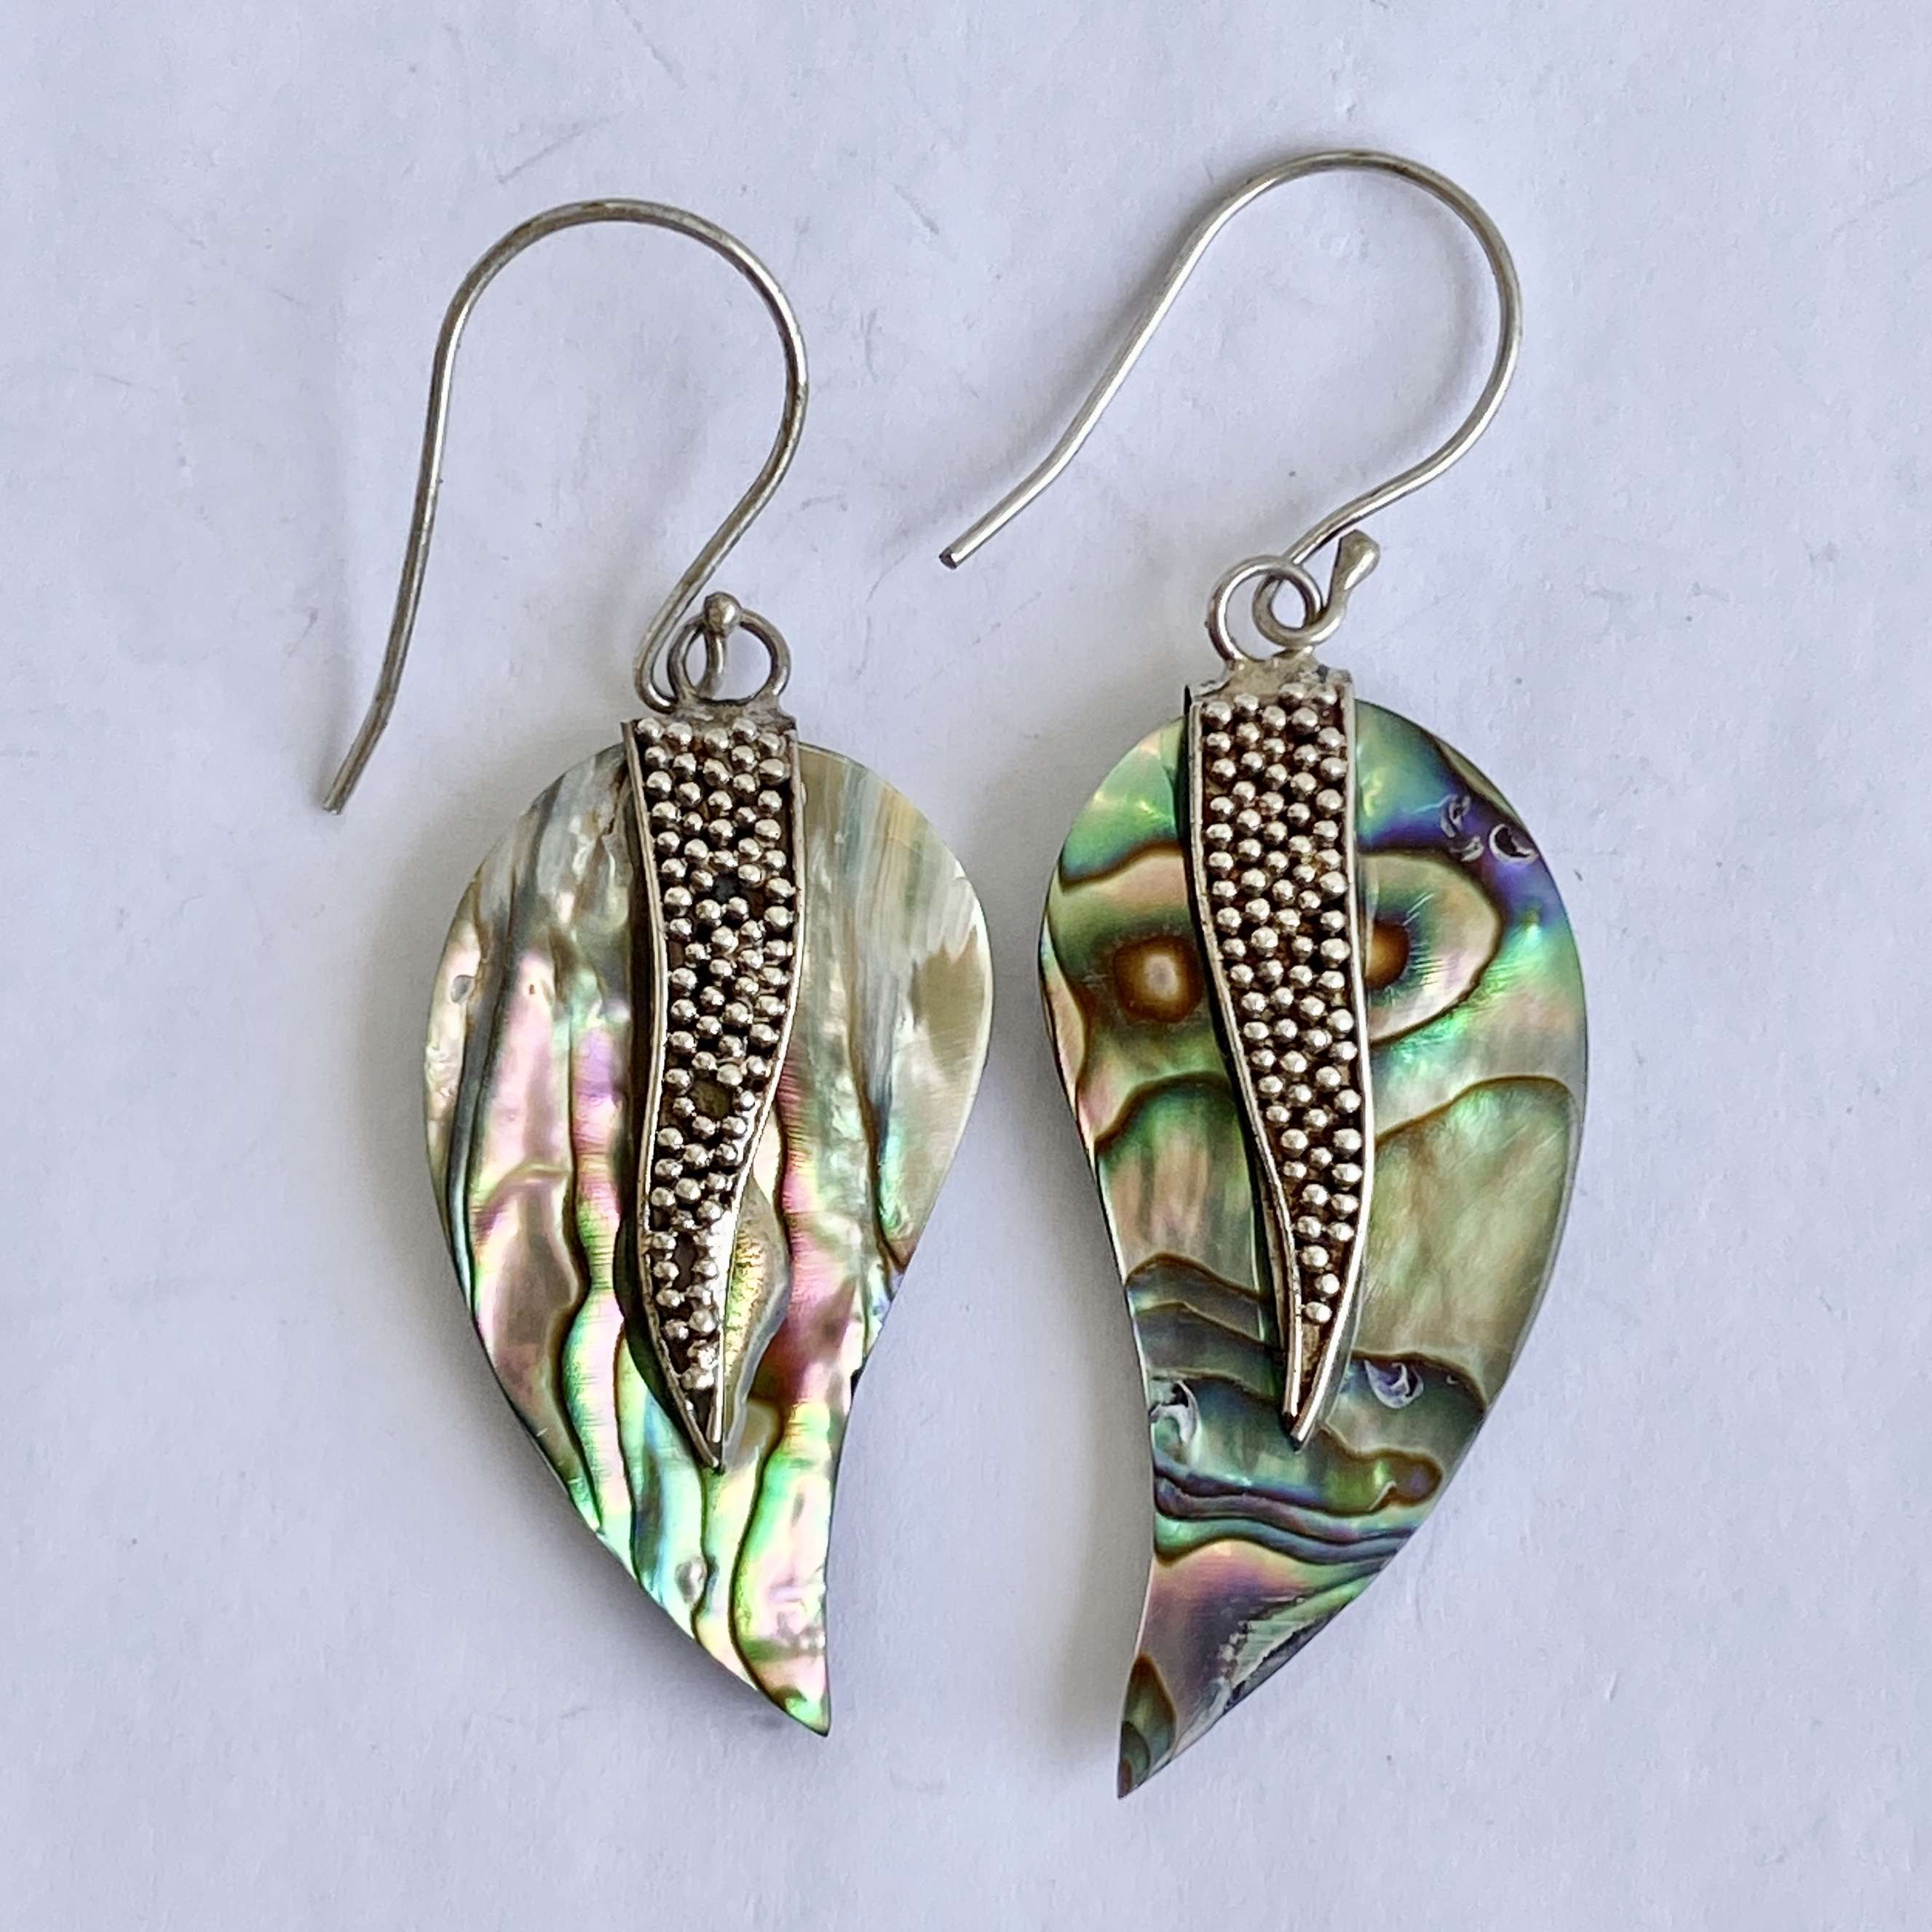 (HANDMADE 925 BALI SILVER GRANULATED EARRINGS WITH ABALONE)